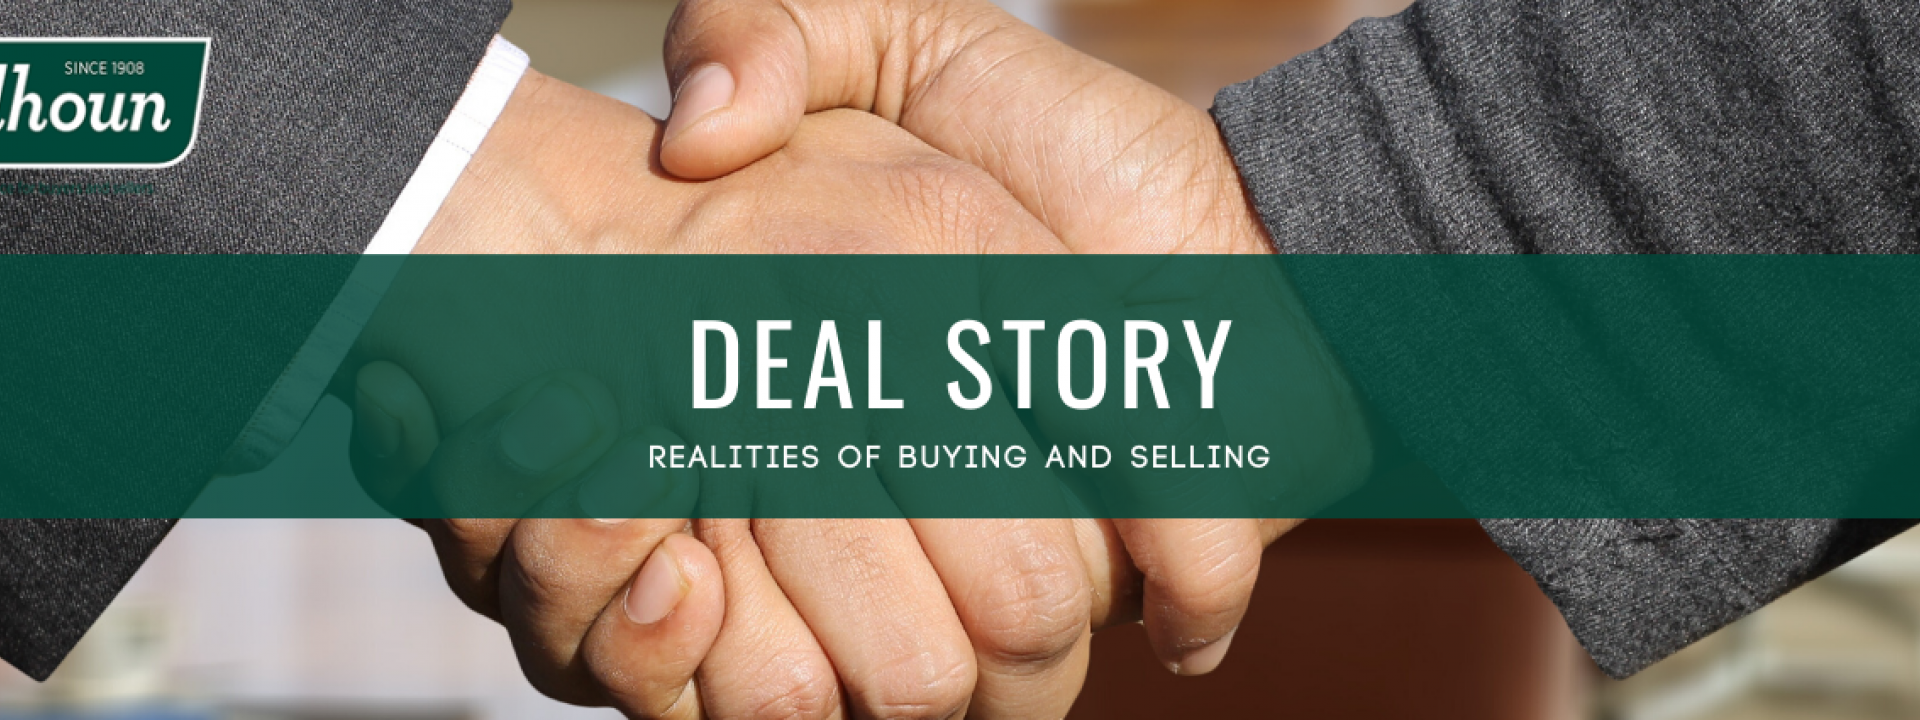 Deal Story Banner